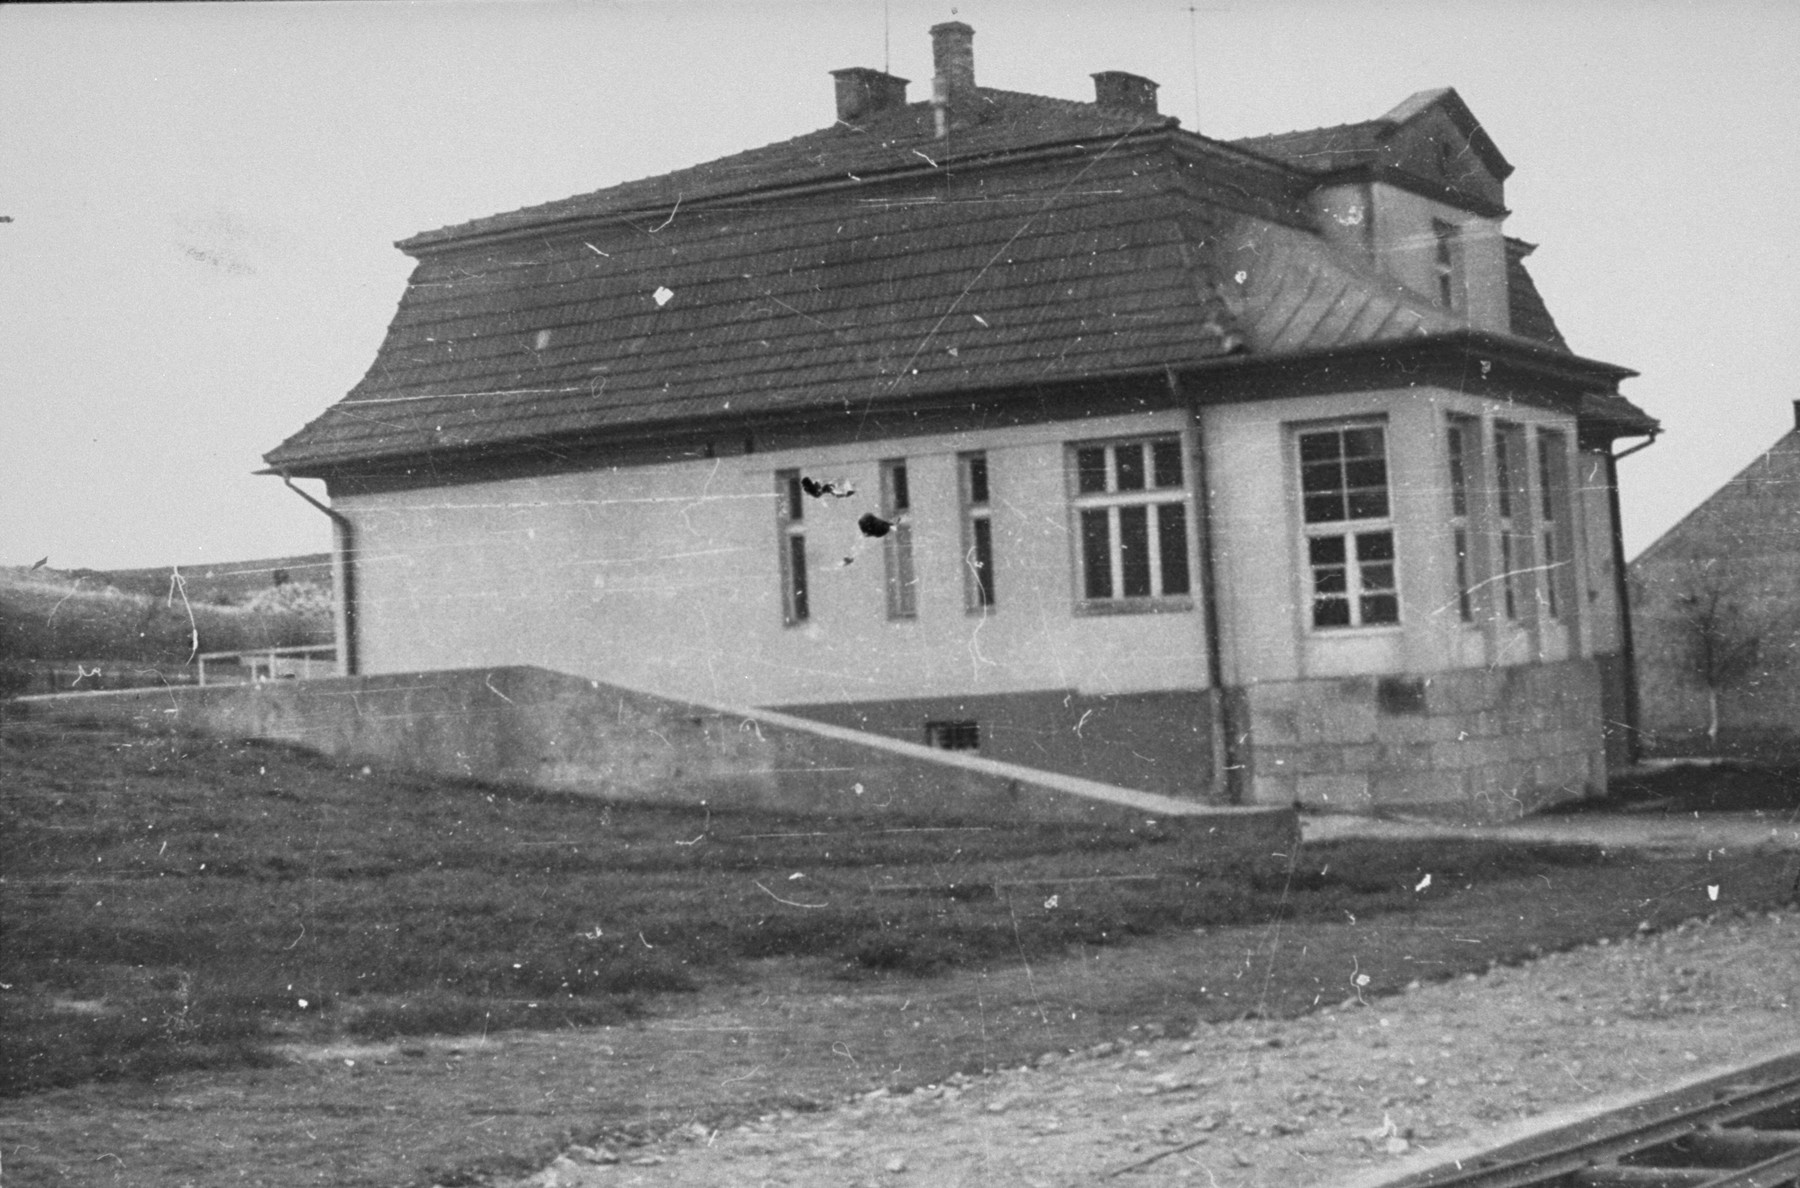 View of the villa of commandant Amon Goeth in the Plaszow concentration camp.